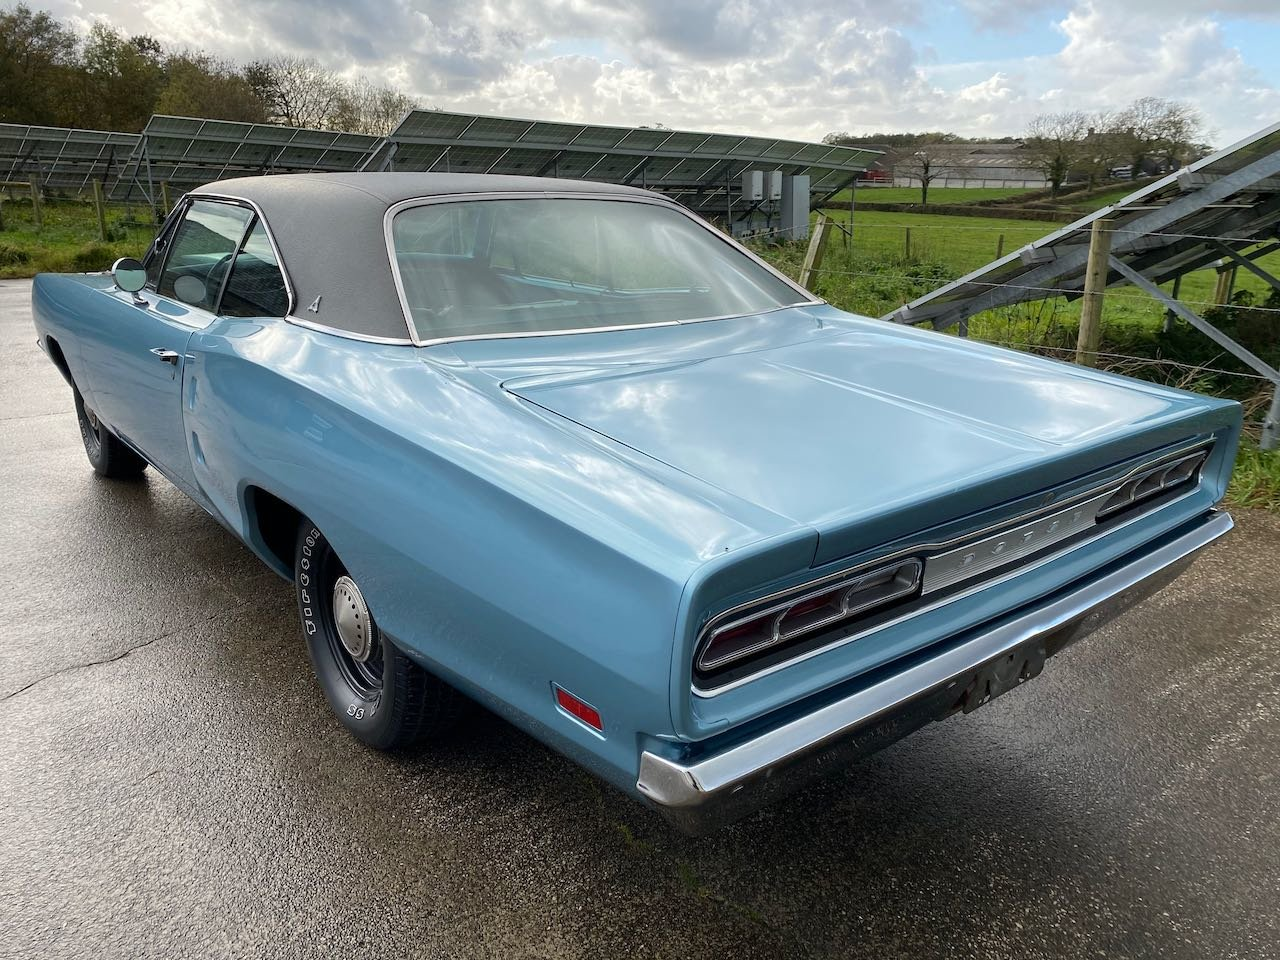 1969 Dodge Coronet 440 with 6-pack carburettors For Sale (picture 2 of 6)